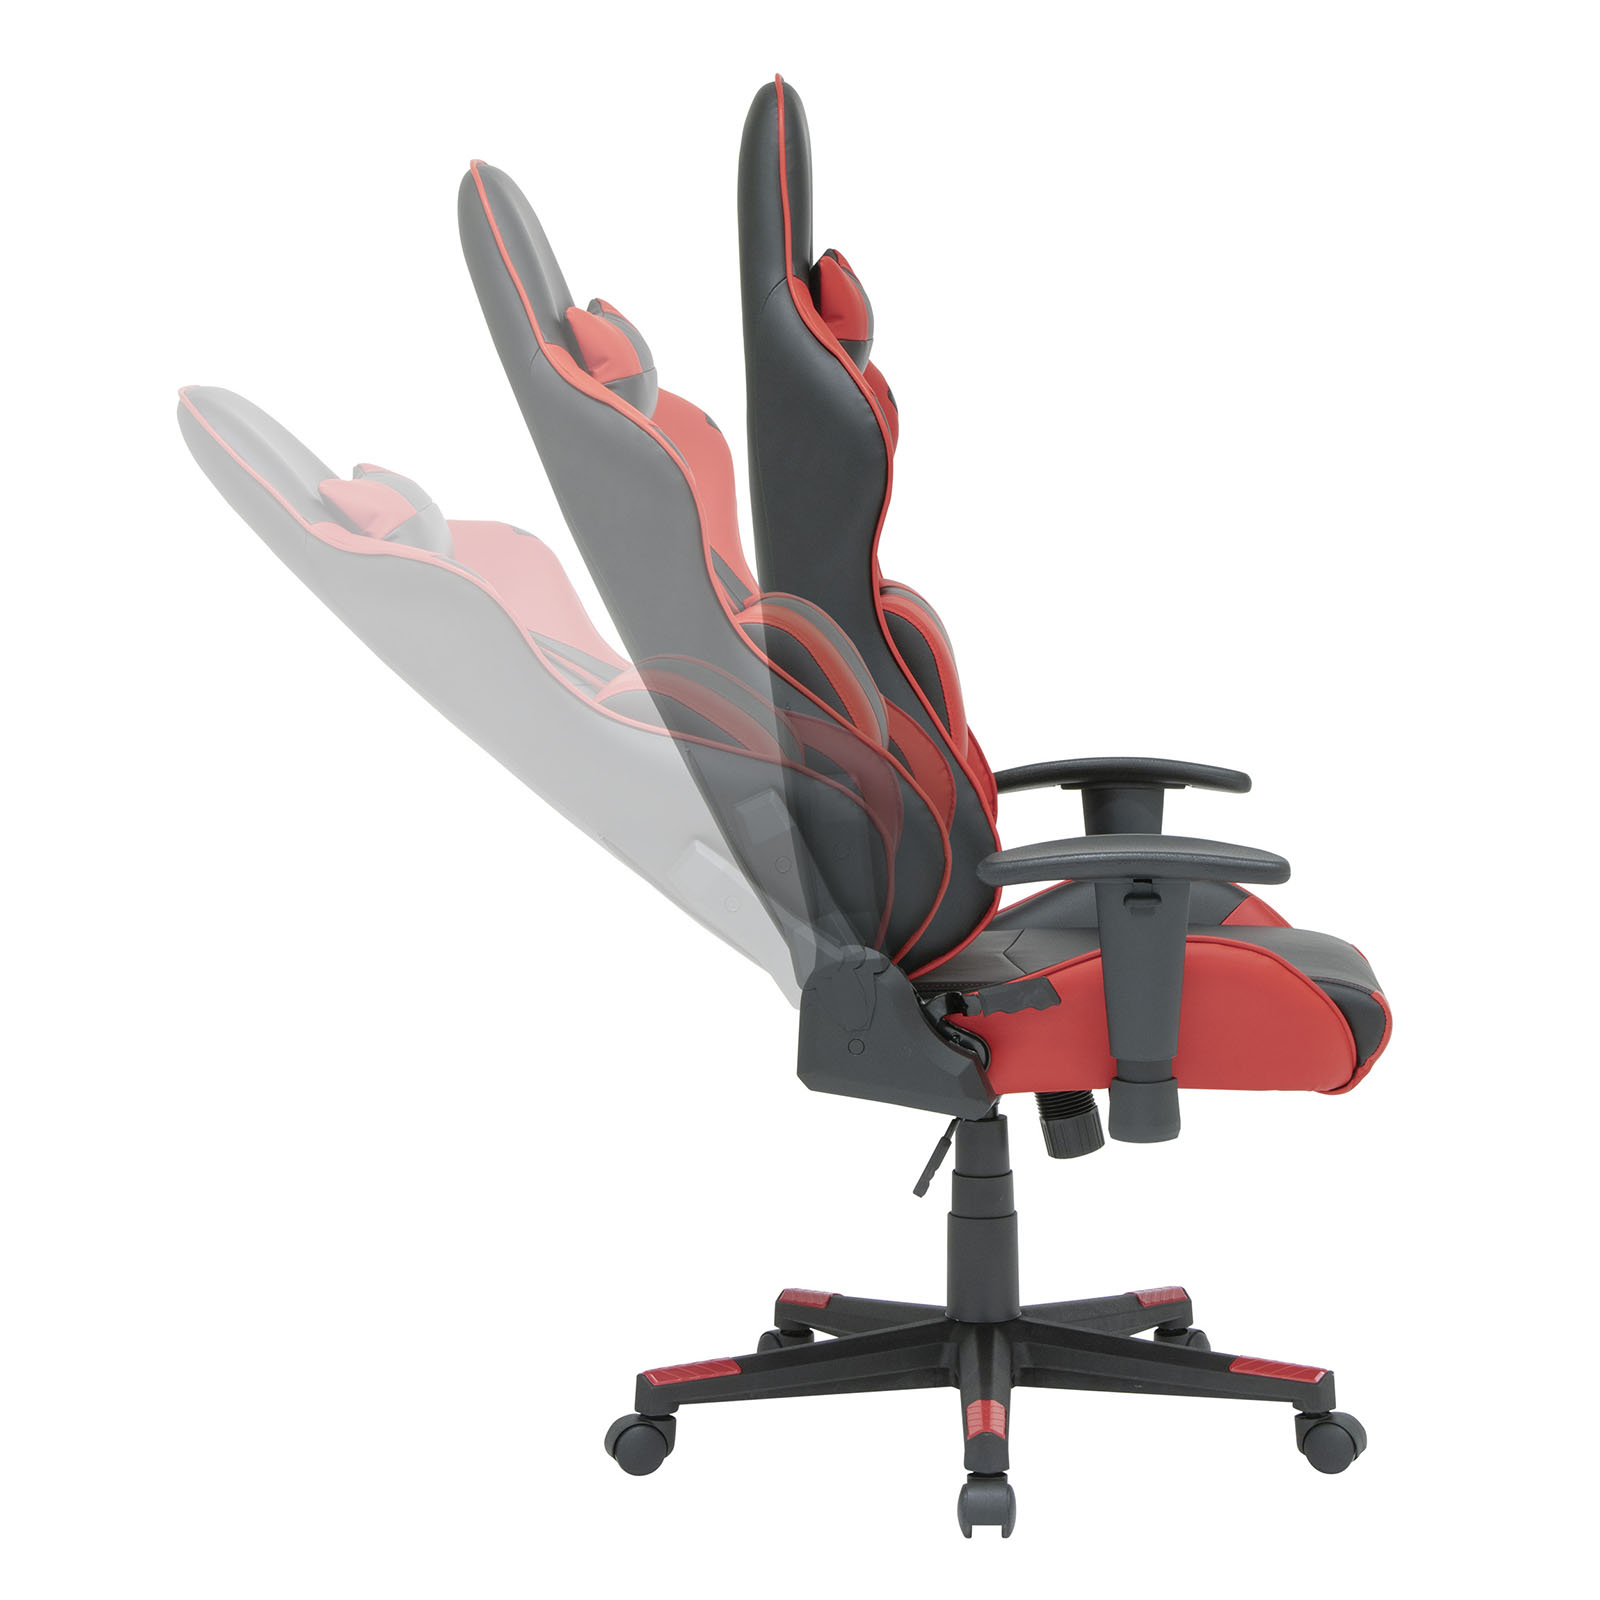 10660 High Back Gaming Chair motion